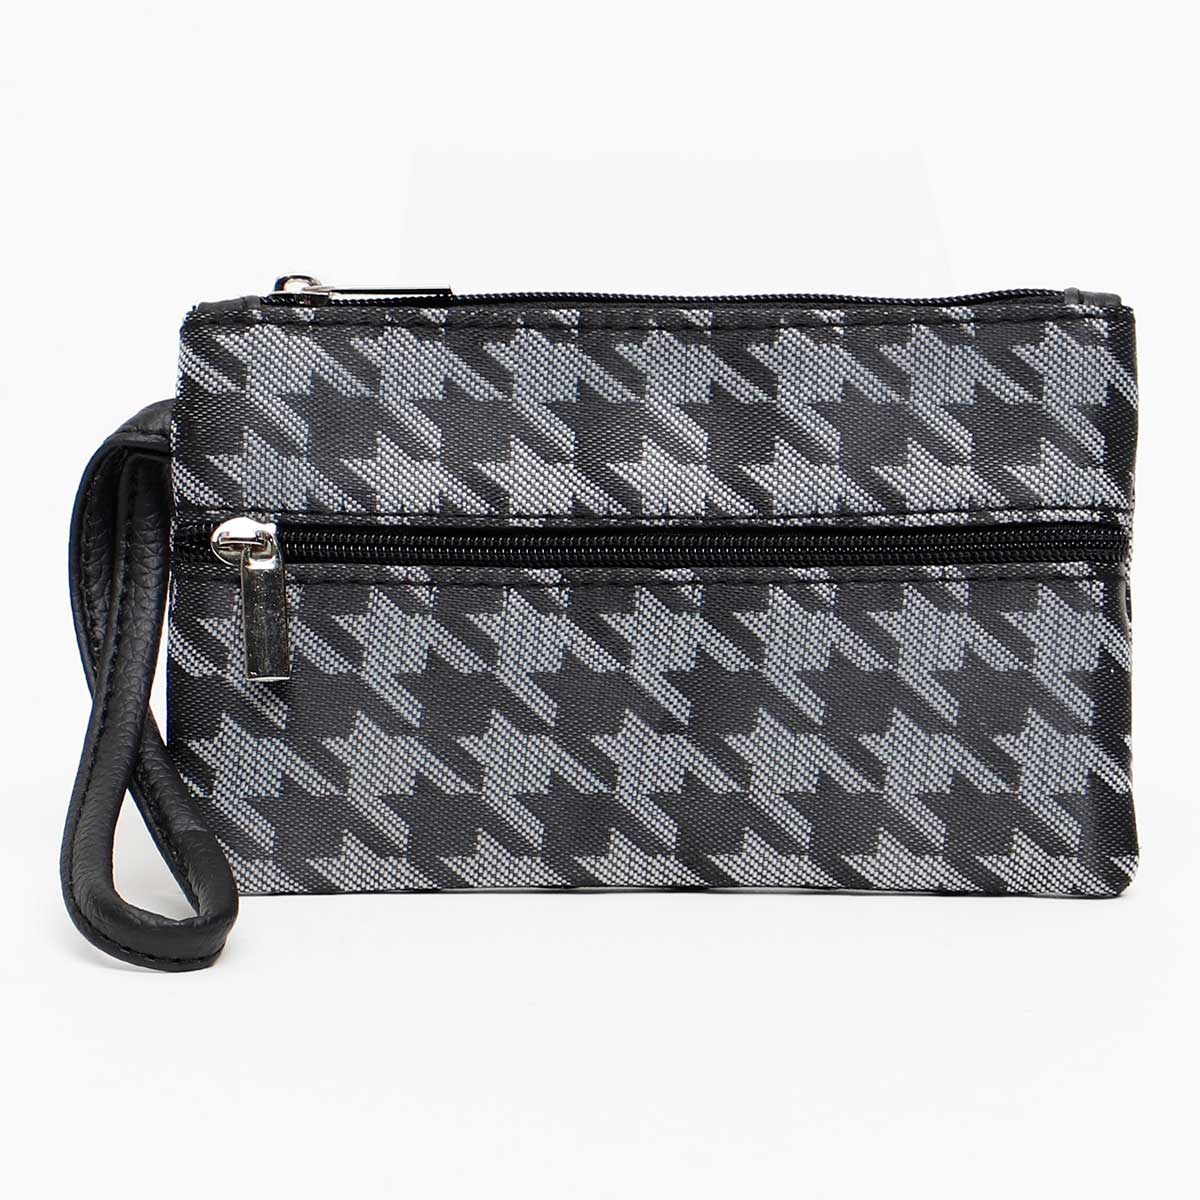 GRAY BLACK HOUNDSTOOTH COIN/CARD PURSE